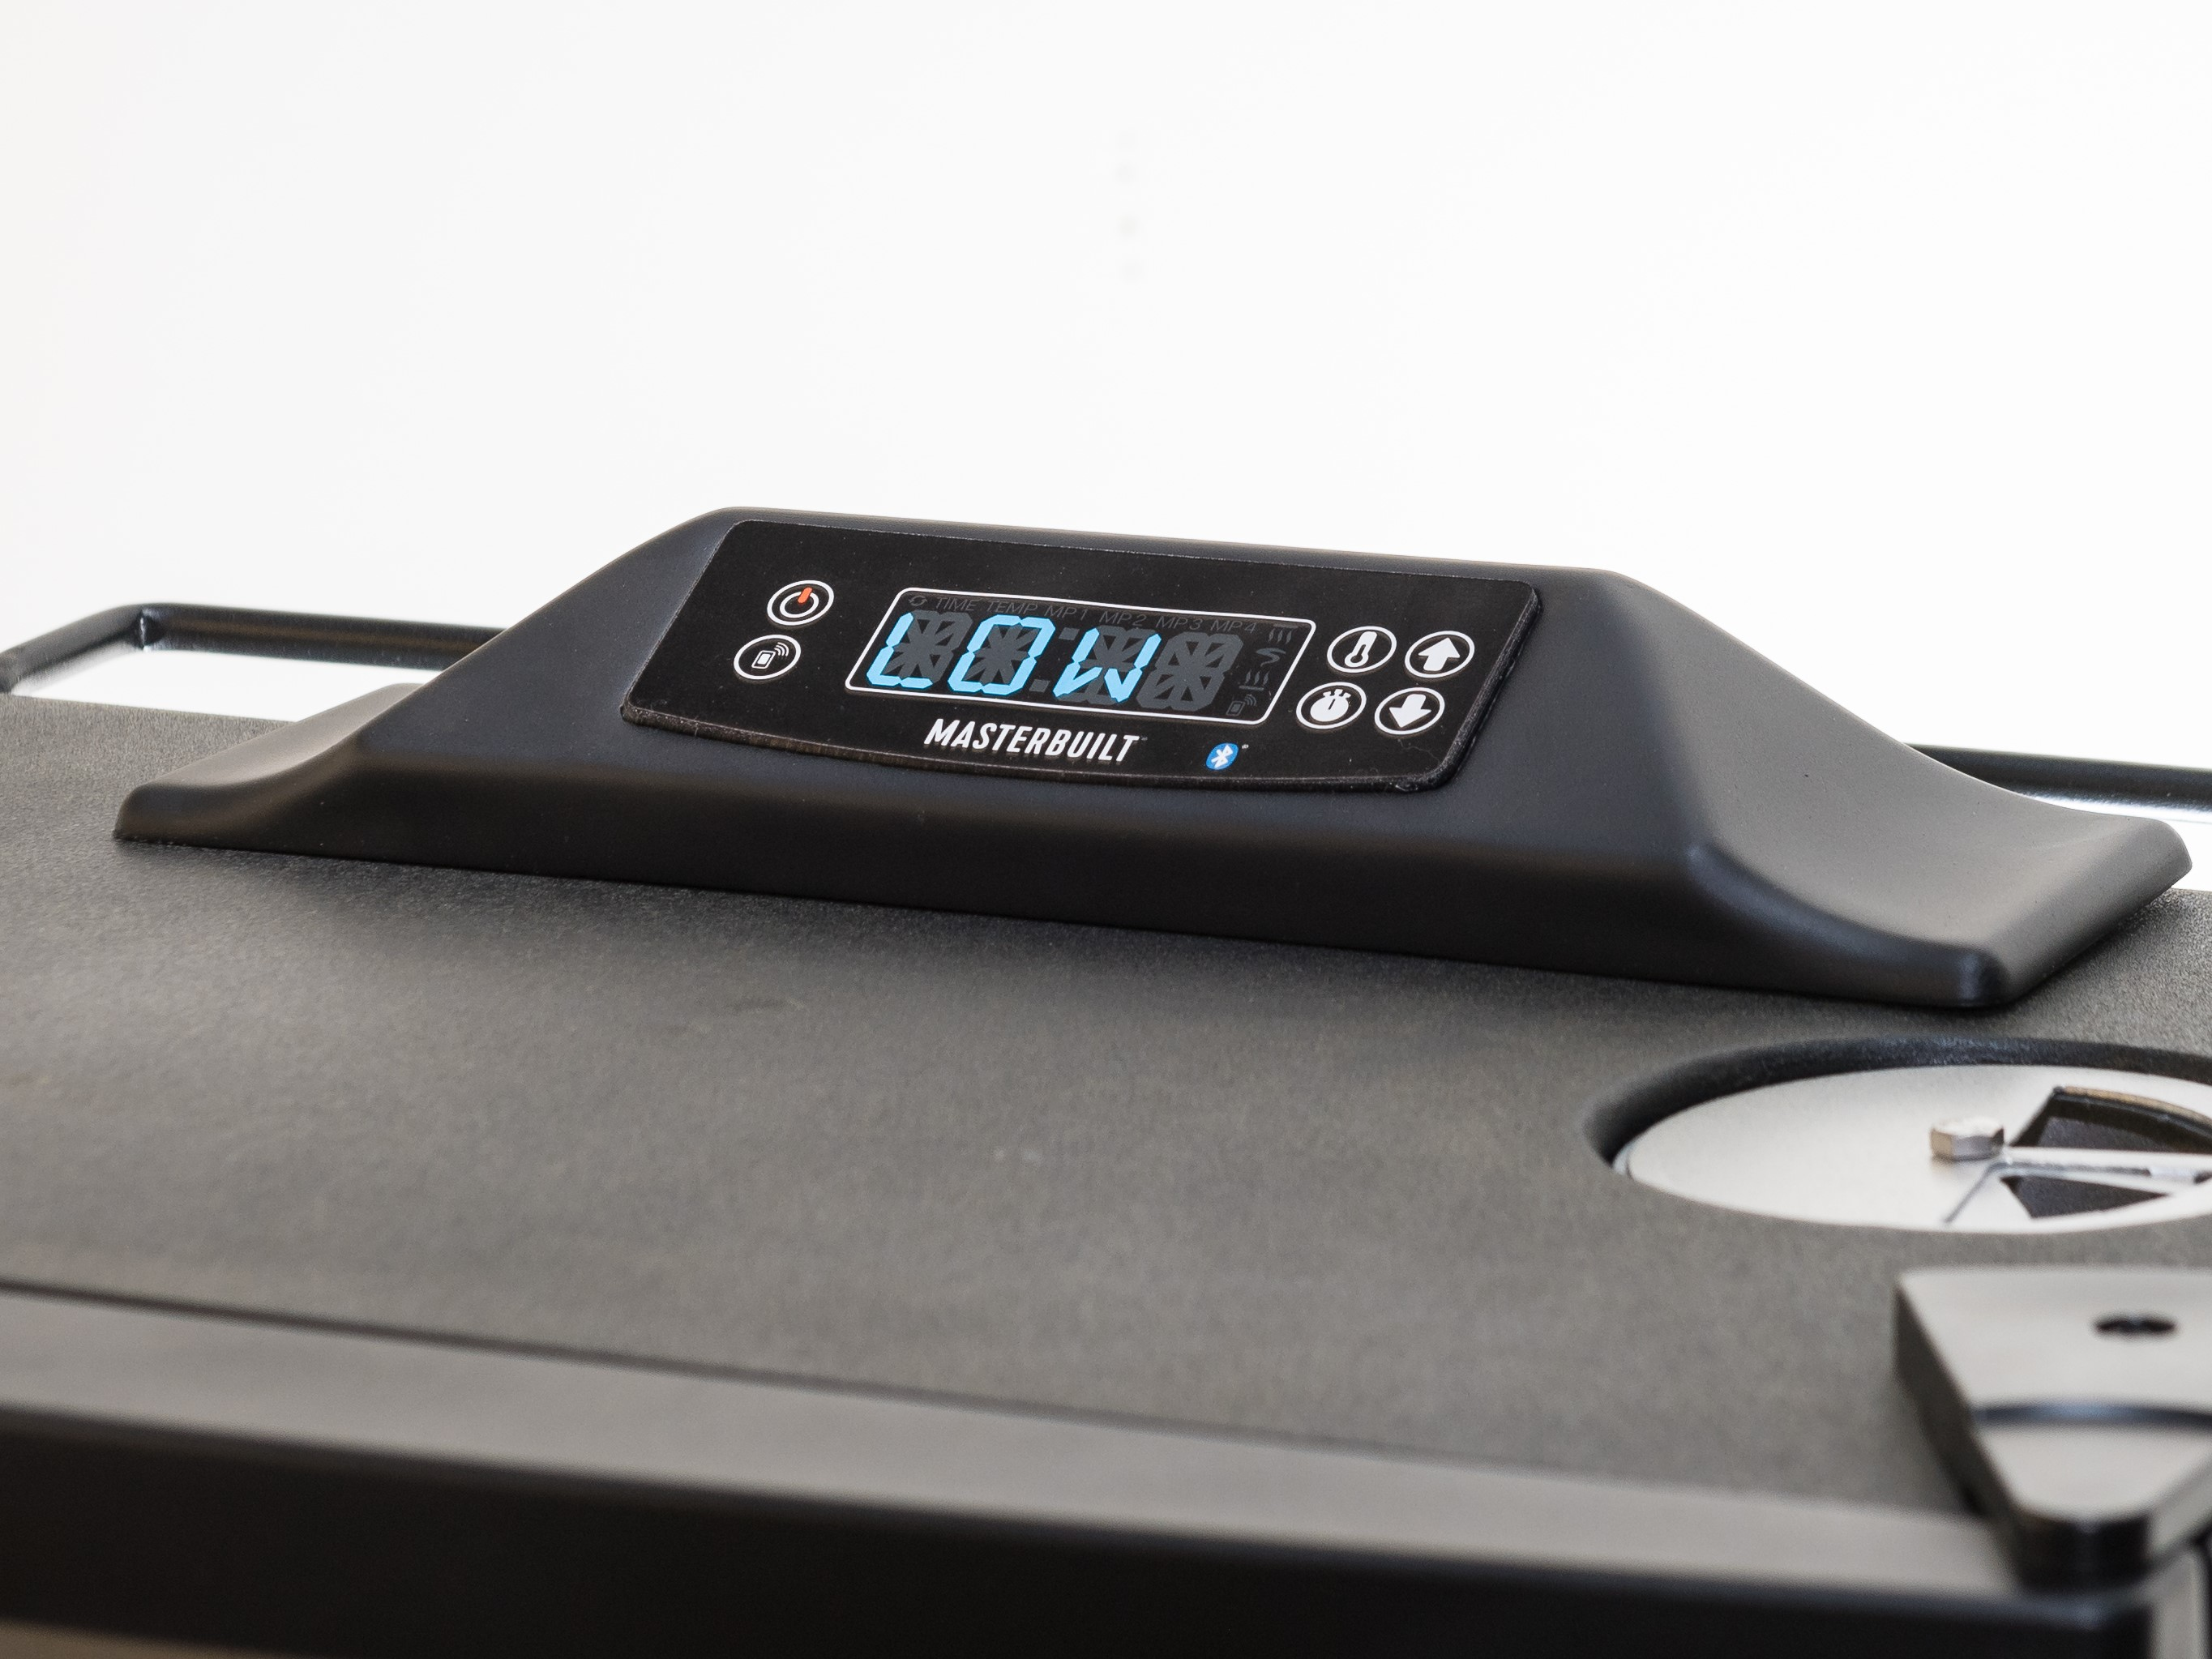 The digital control panel gives you precise control